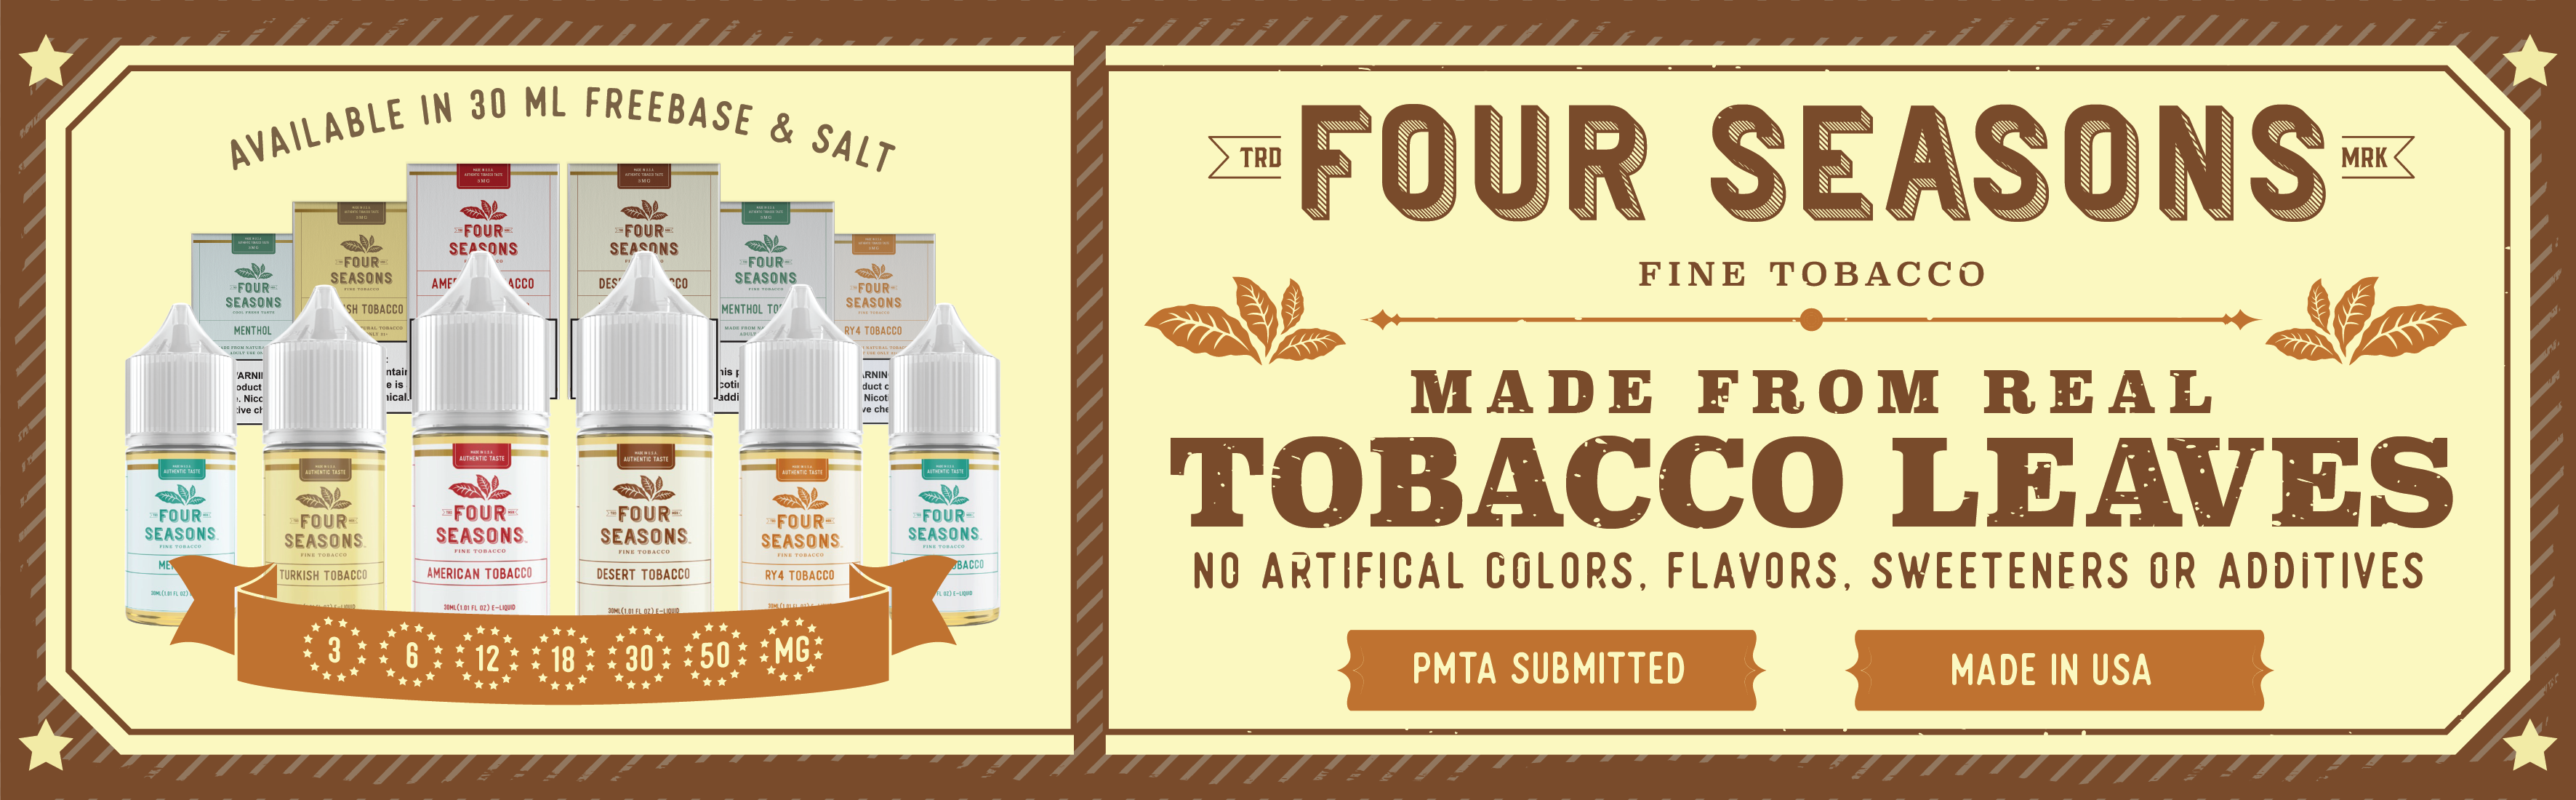 fourseasons-8cigswsale-1700x528.png